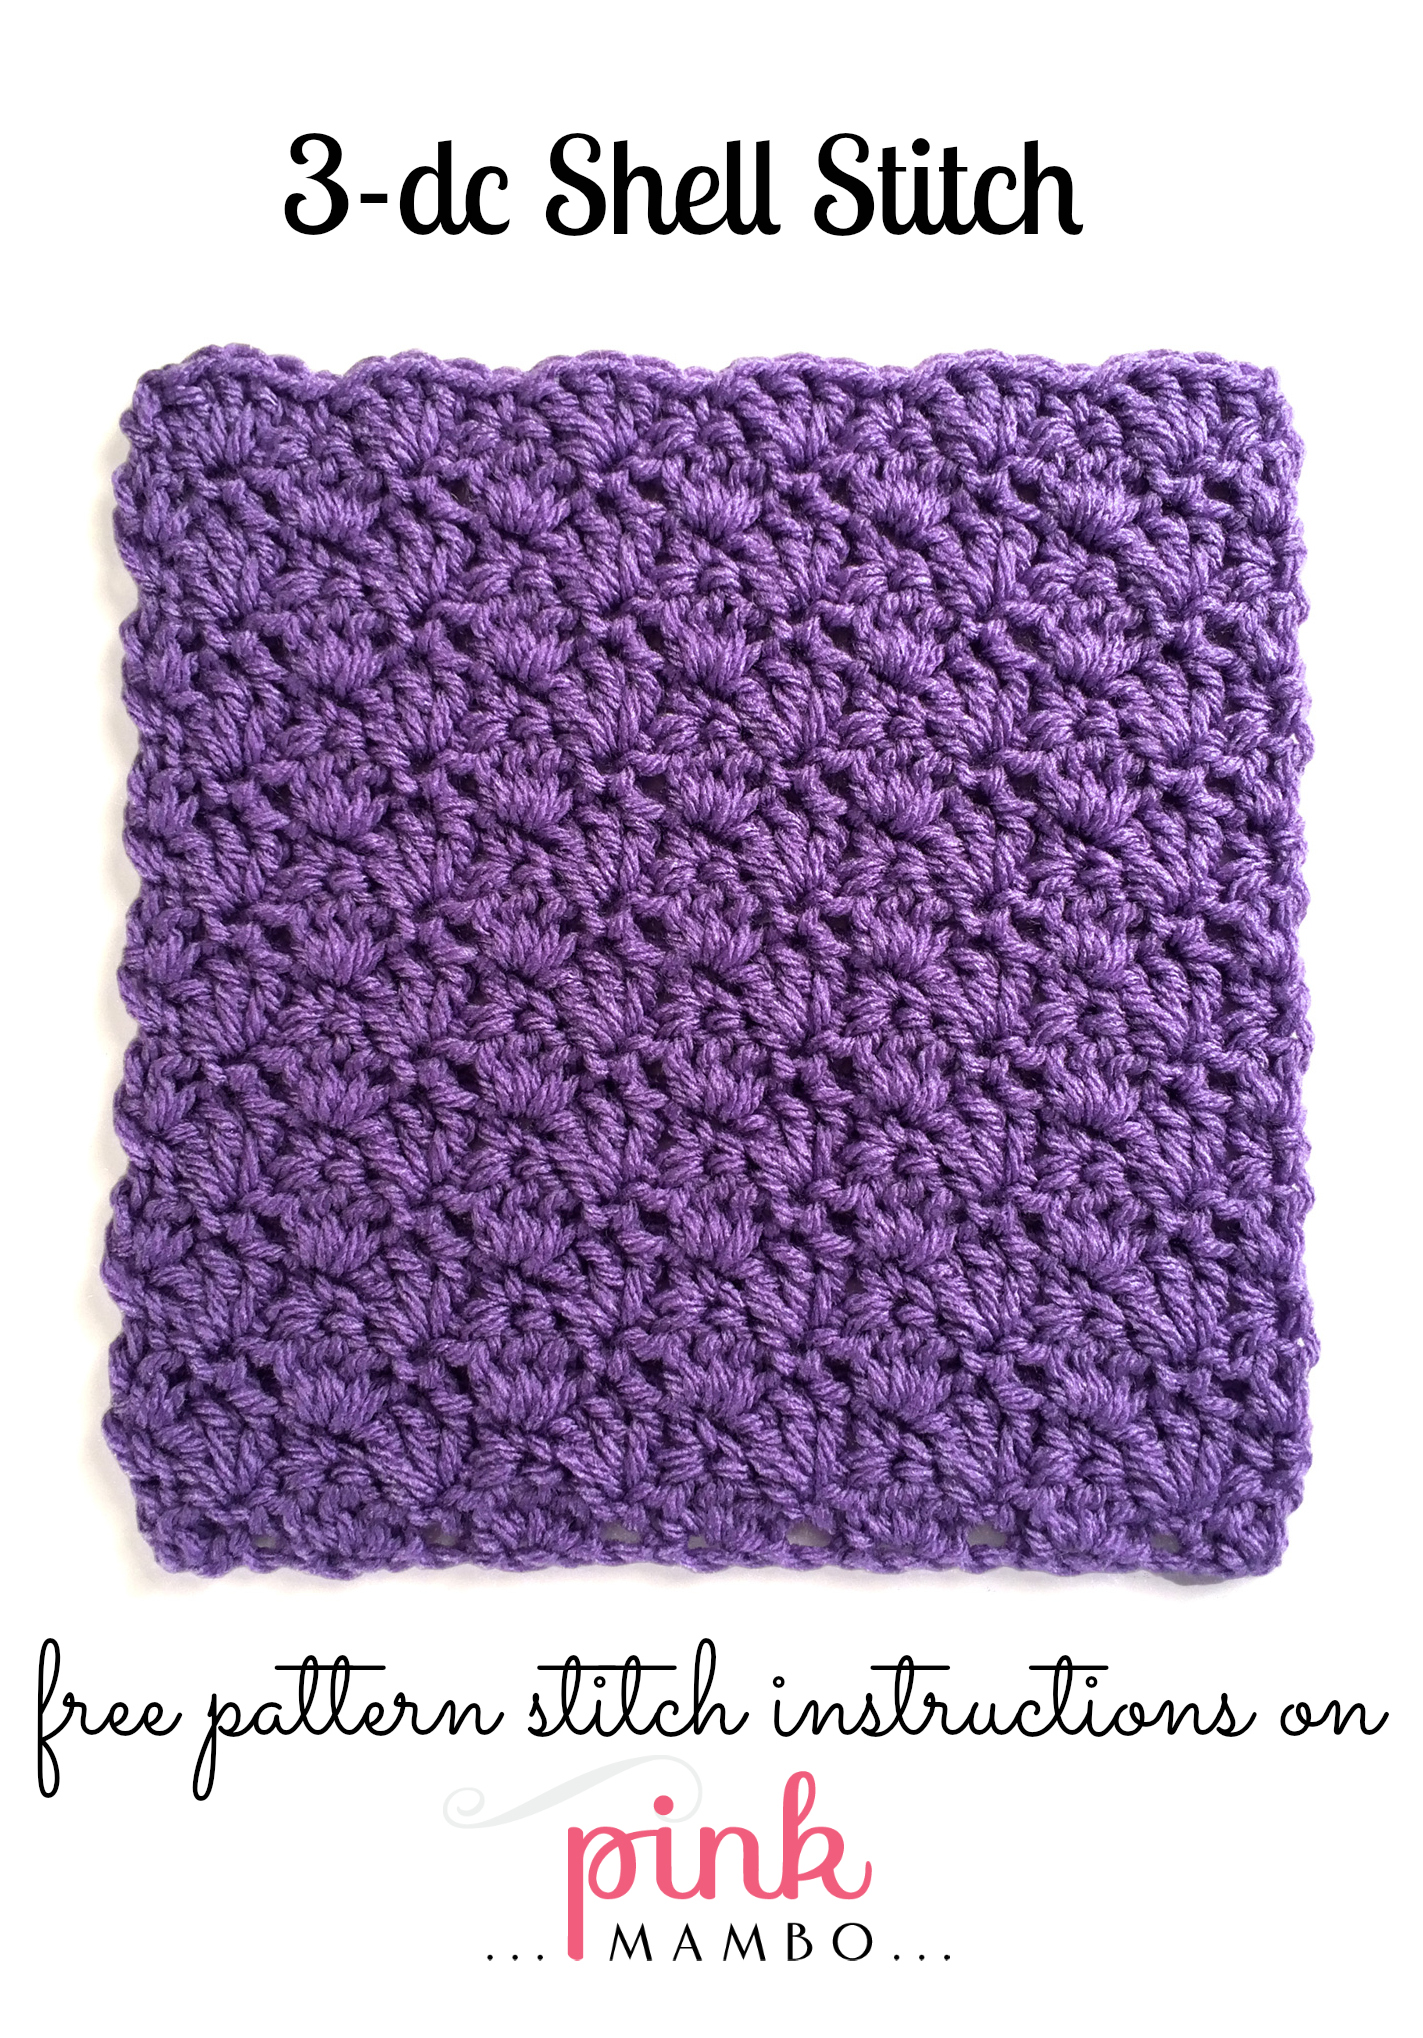 Crochet Stitch Patterns : Double Crochet Shell Stitch Pattern - Pink Mambo